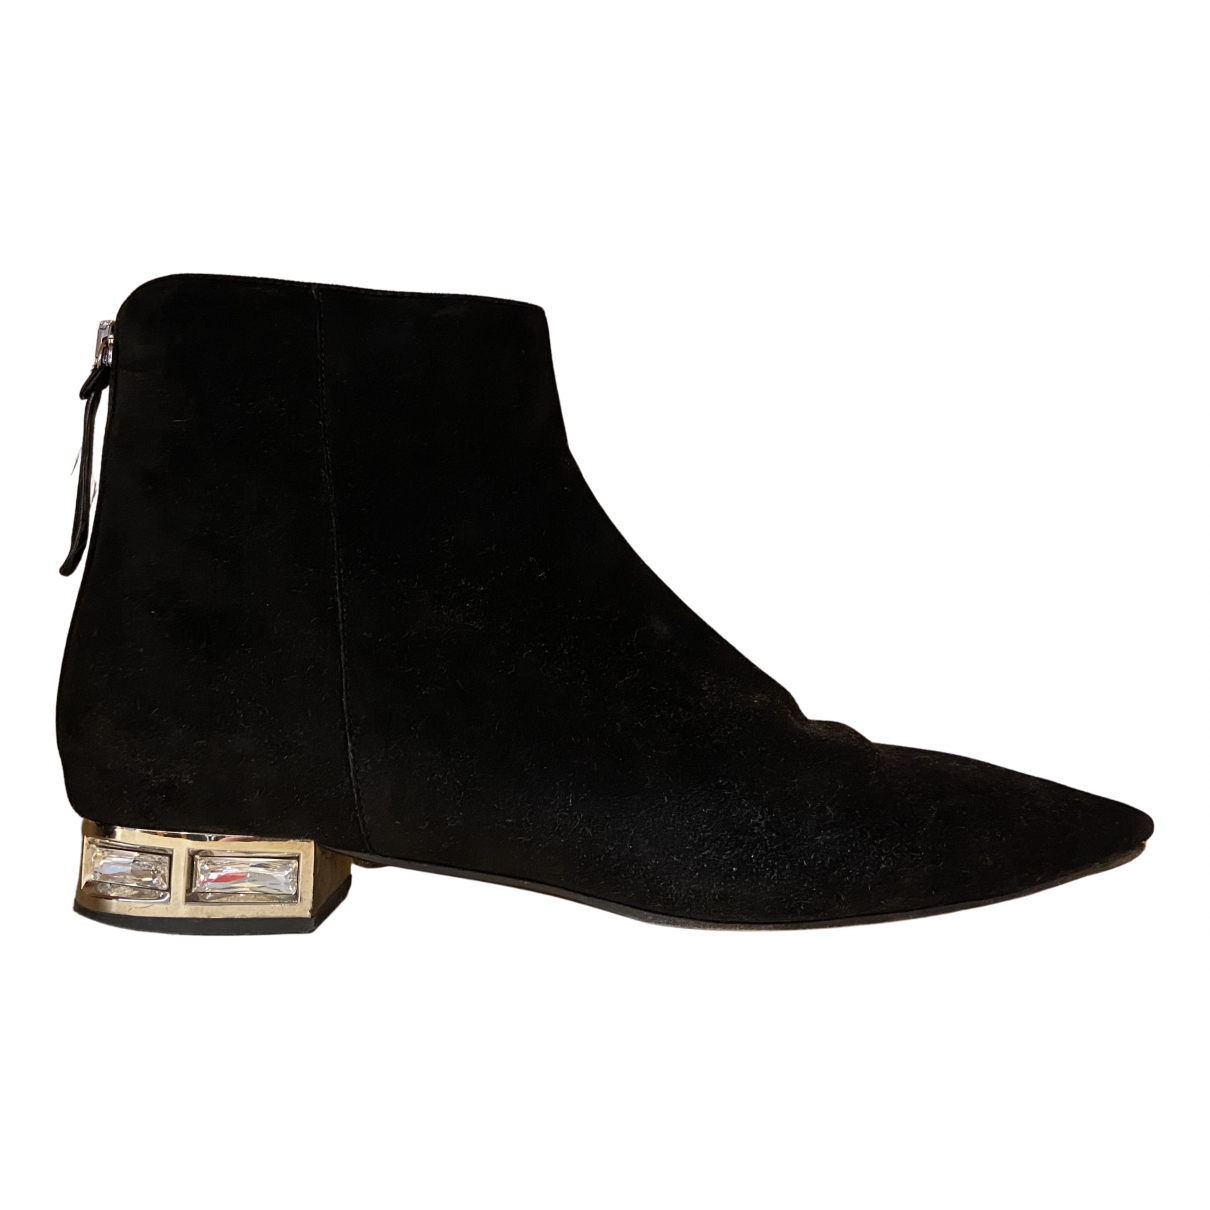 Miu Miu N Black Suede Ankle boots for Women 40 IT